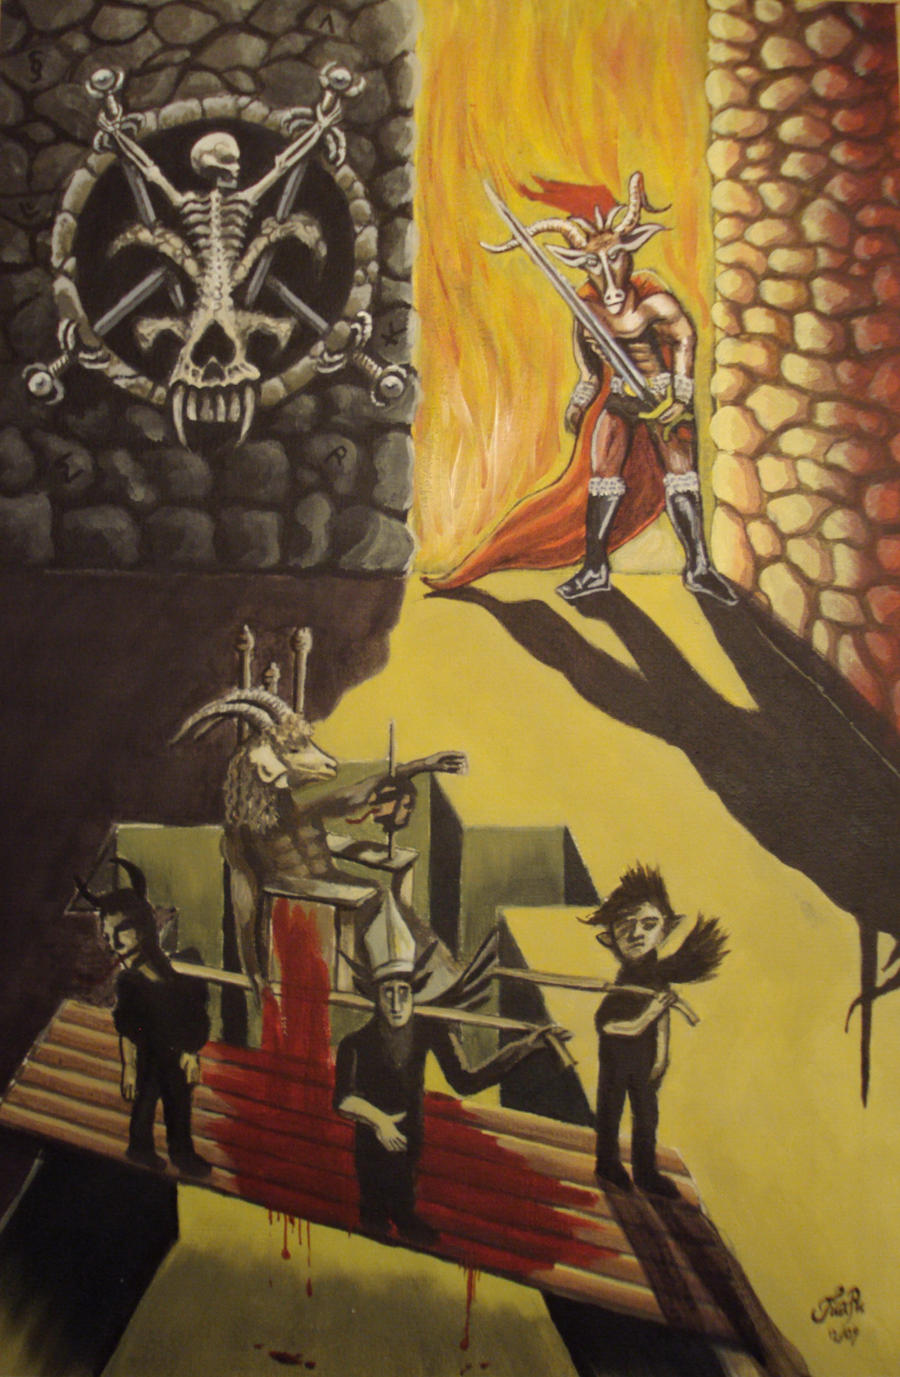 Slayer compilation by Kayleigh82 on DeviantArt